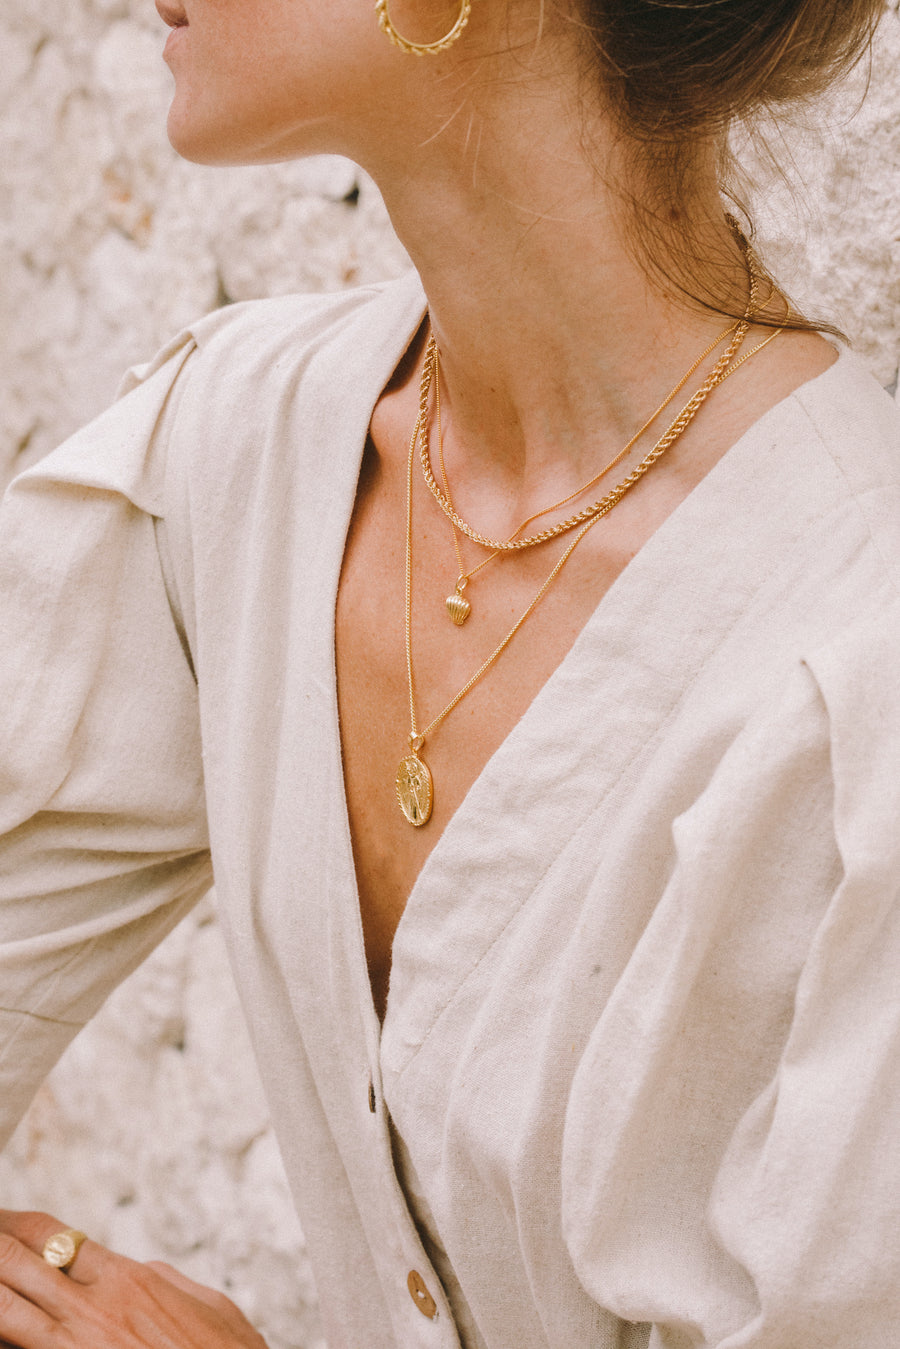 Rhode Island Twisted Rope Chain // Gold